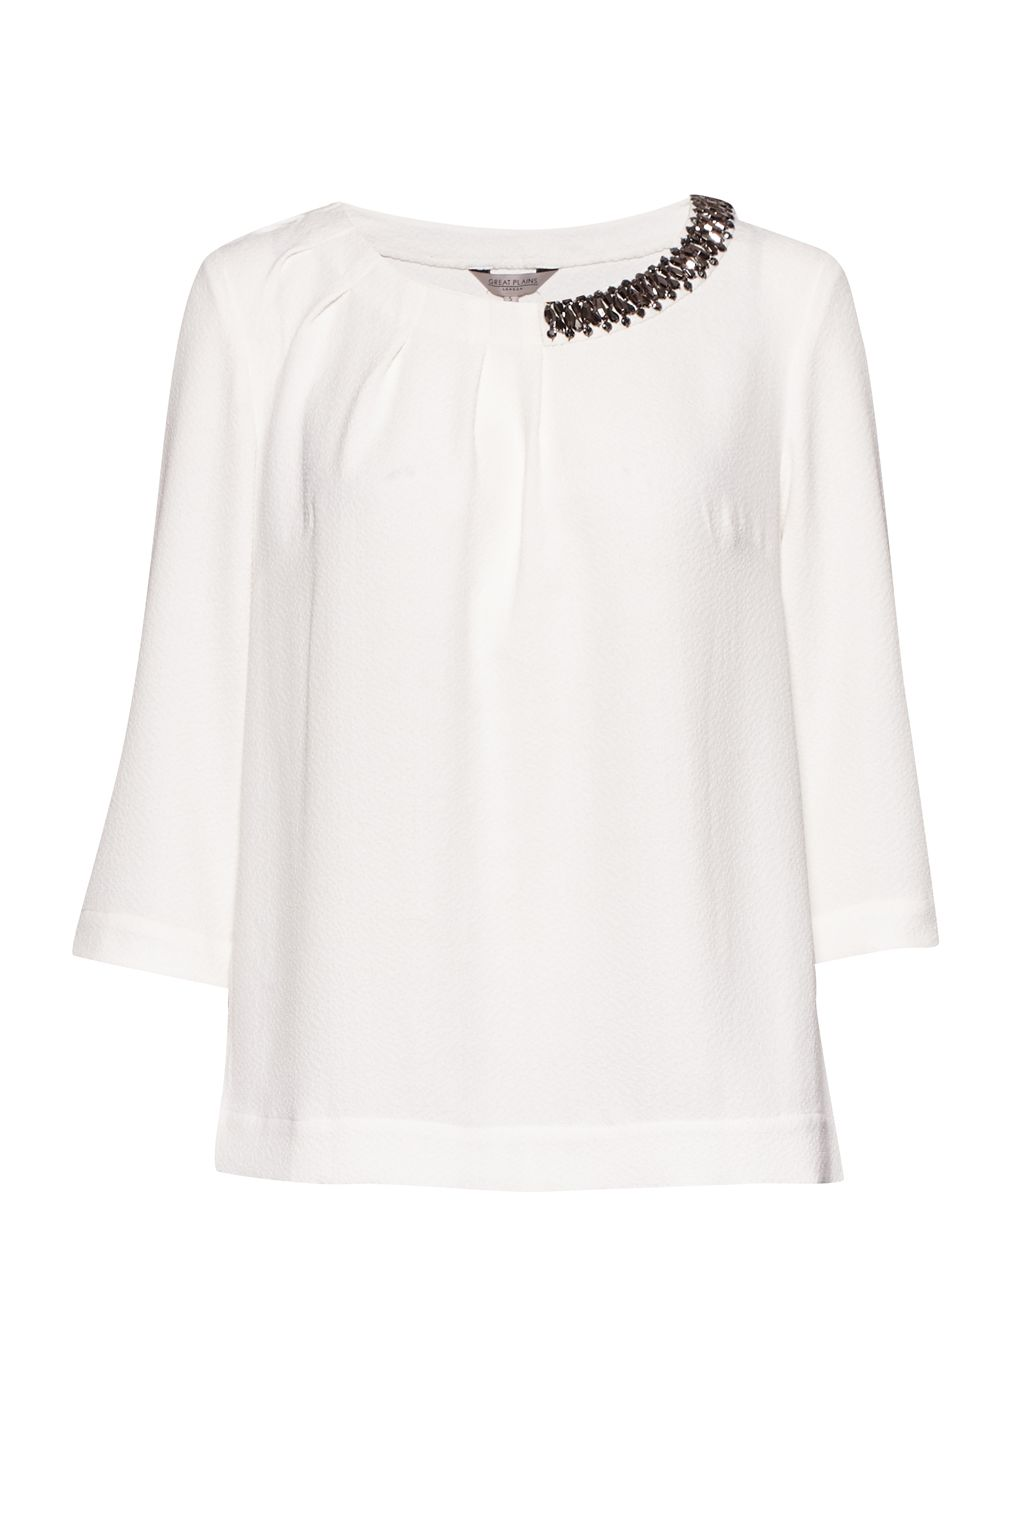 Great Plains Lapland Crepe Embellished Top, White